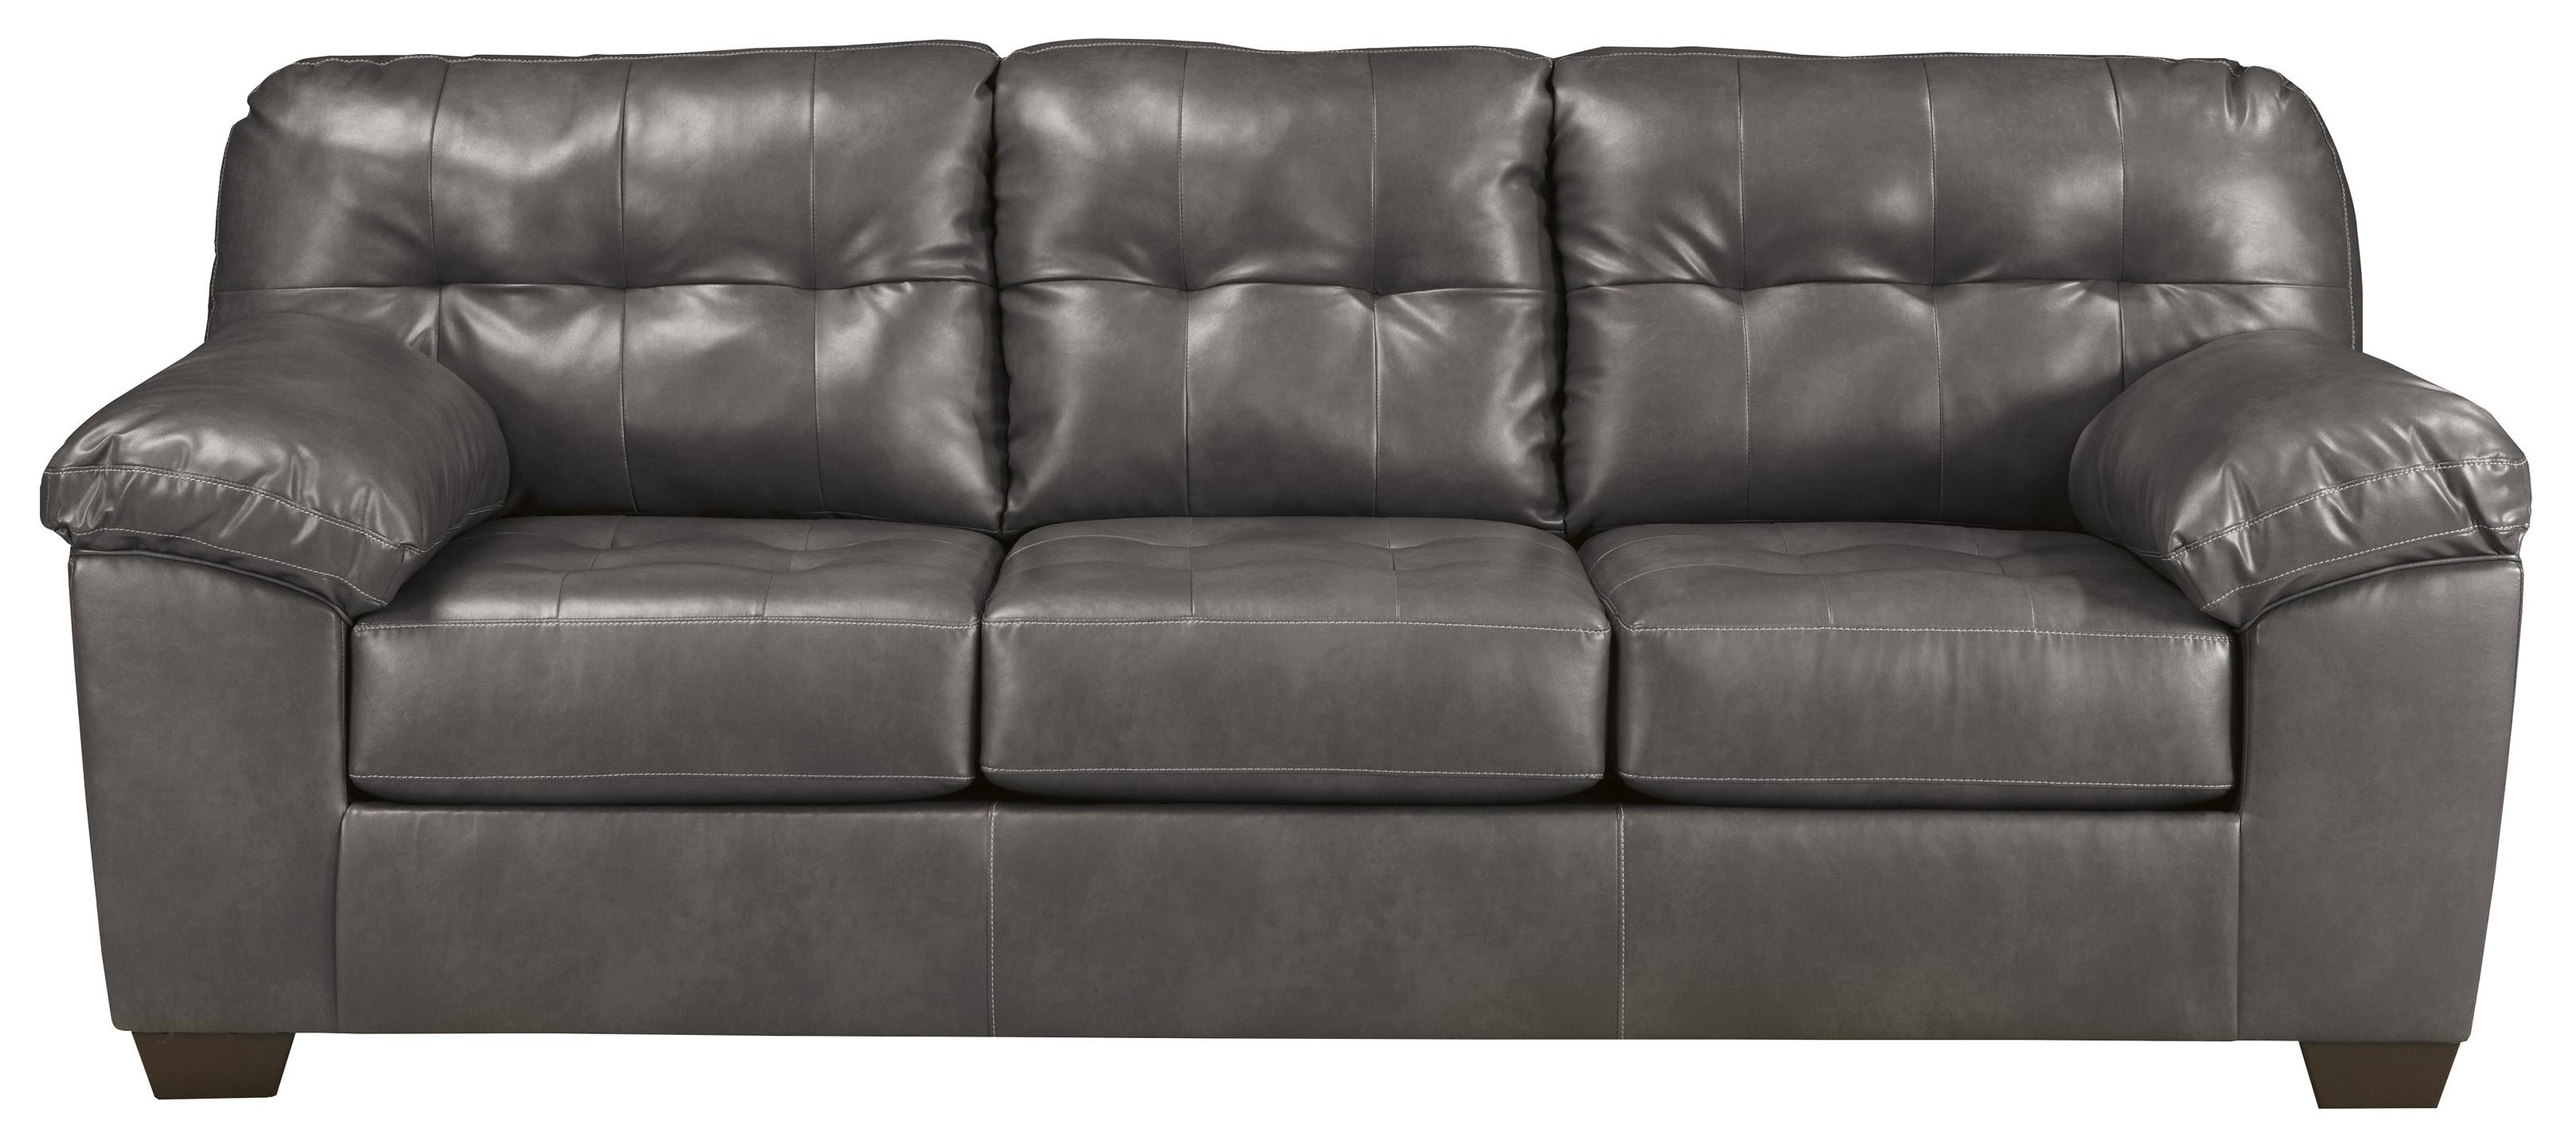 Enjoyable Queen Faux Leather Sofa Sleeper W Tufting By Signature Ibusinesslaw Wood Chair Design Ideas Ibusinesslaworg